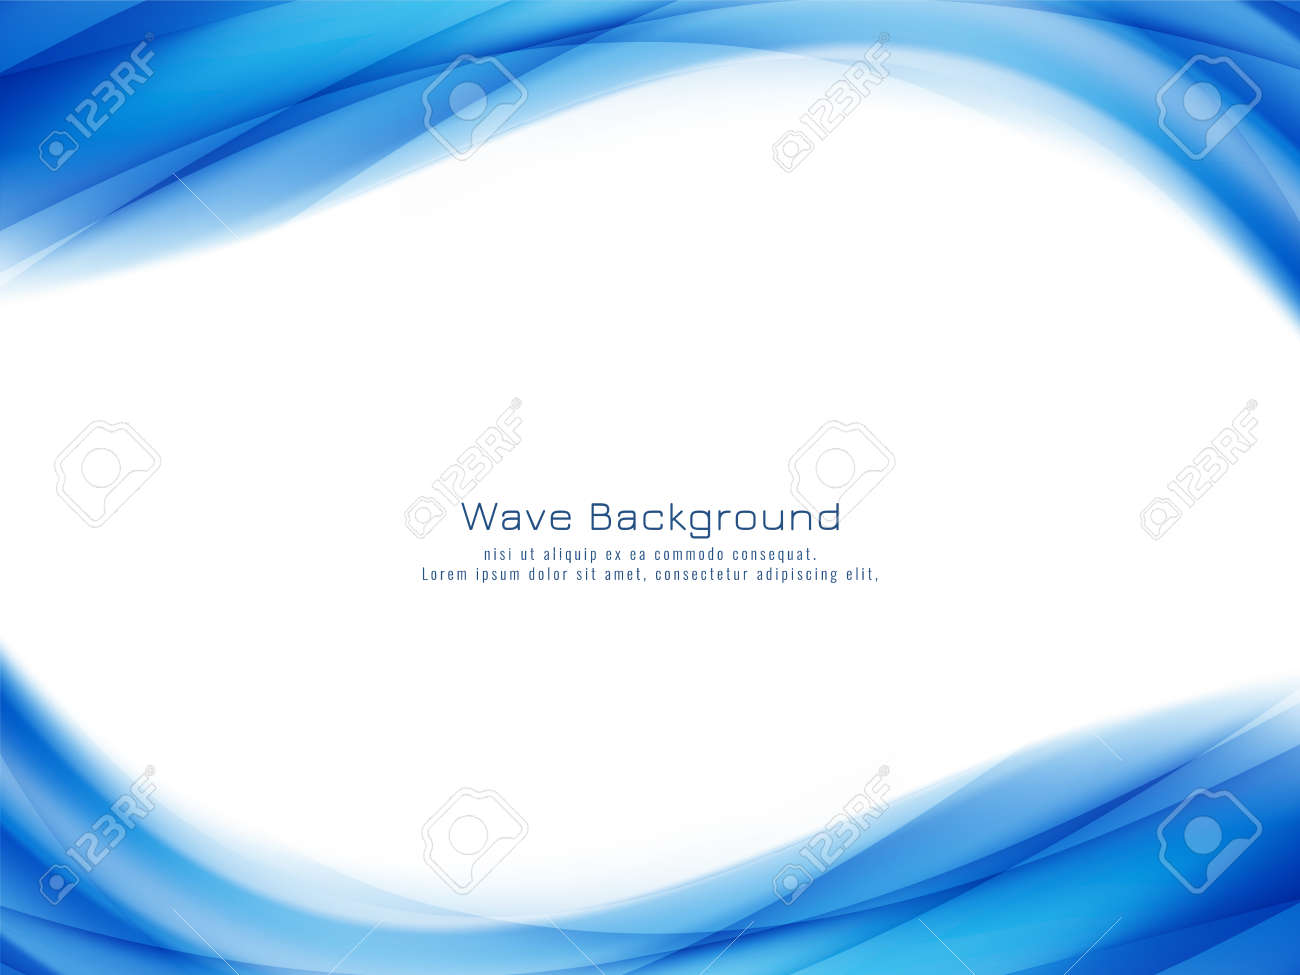 Abstract stylish blue wave background vector - 156502202